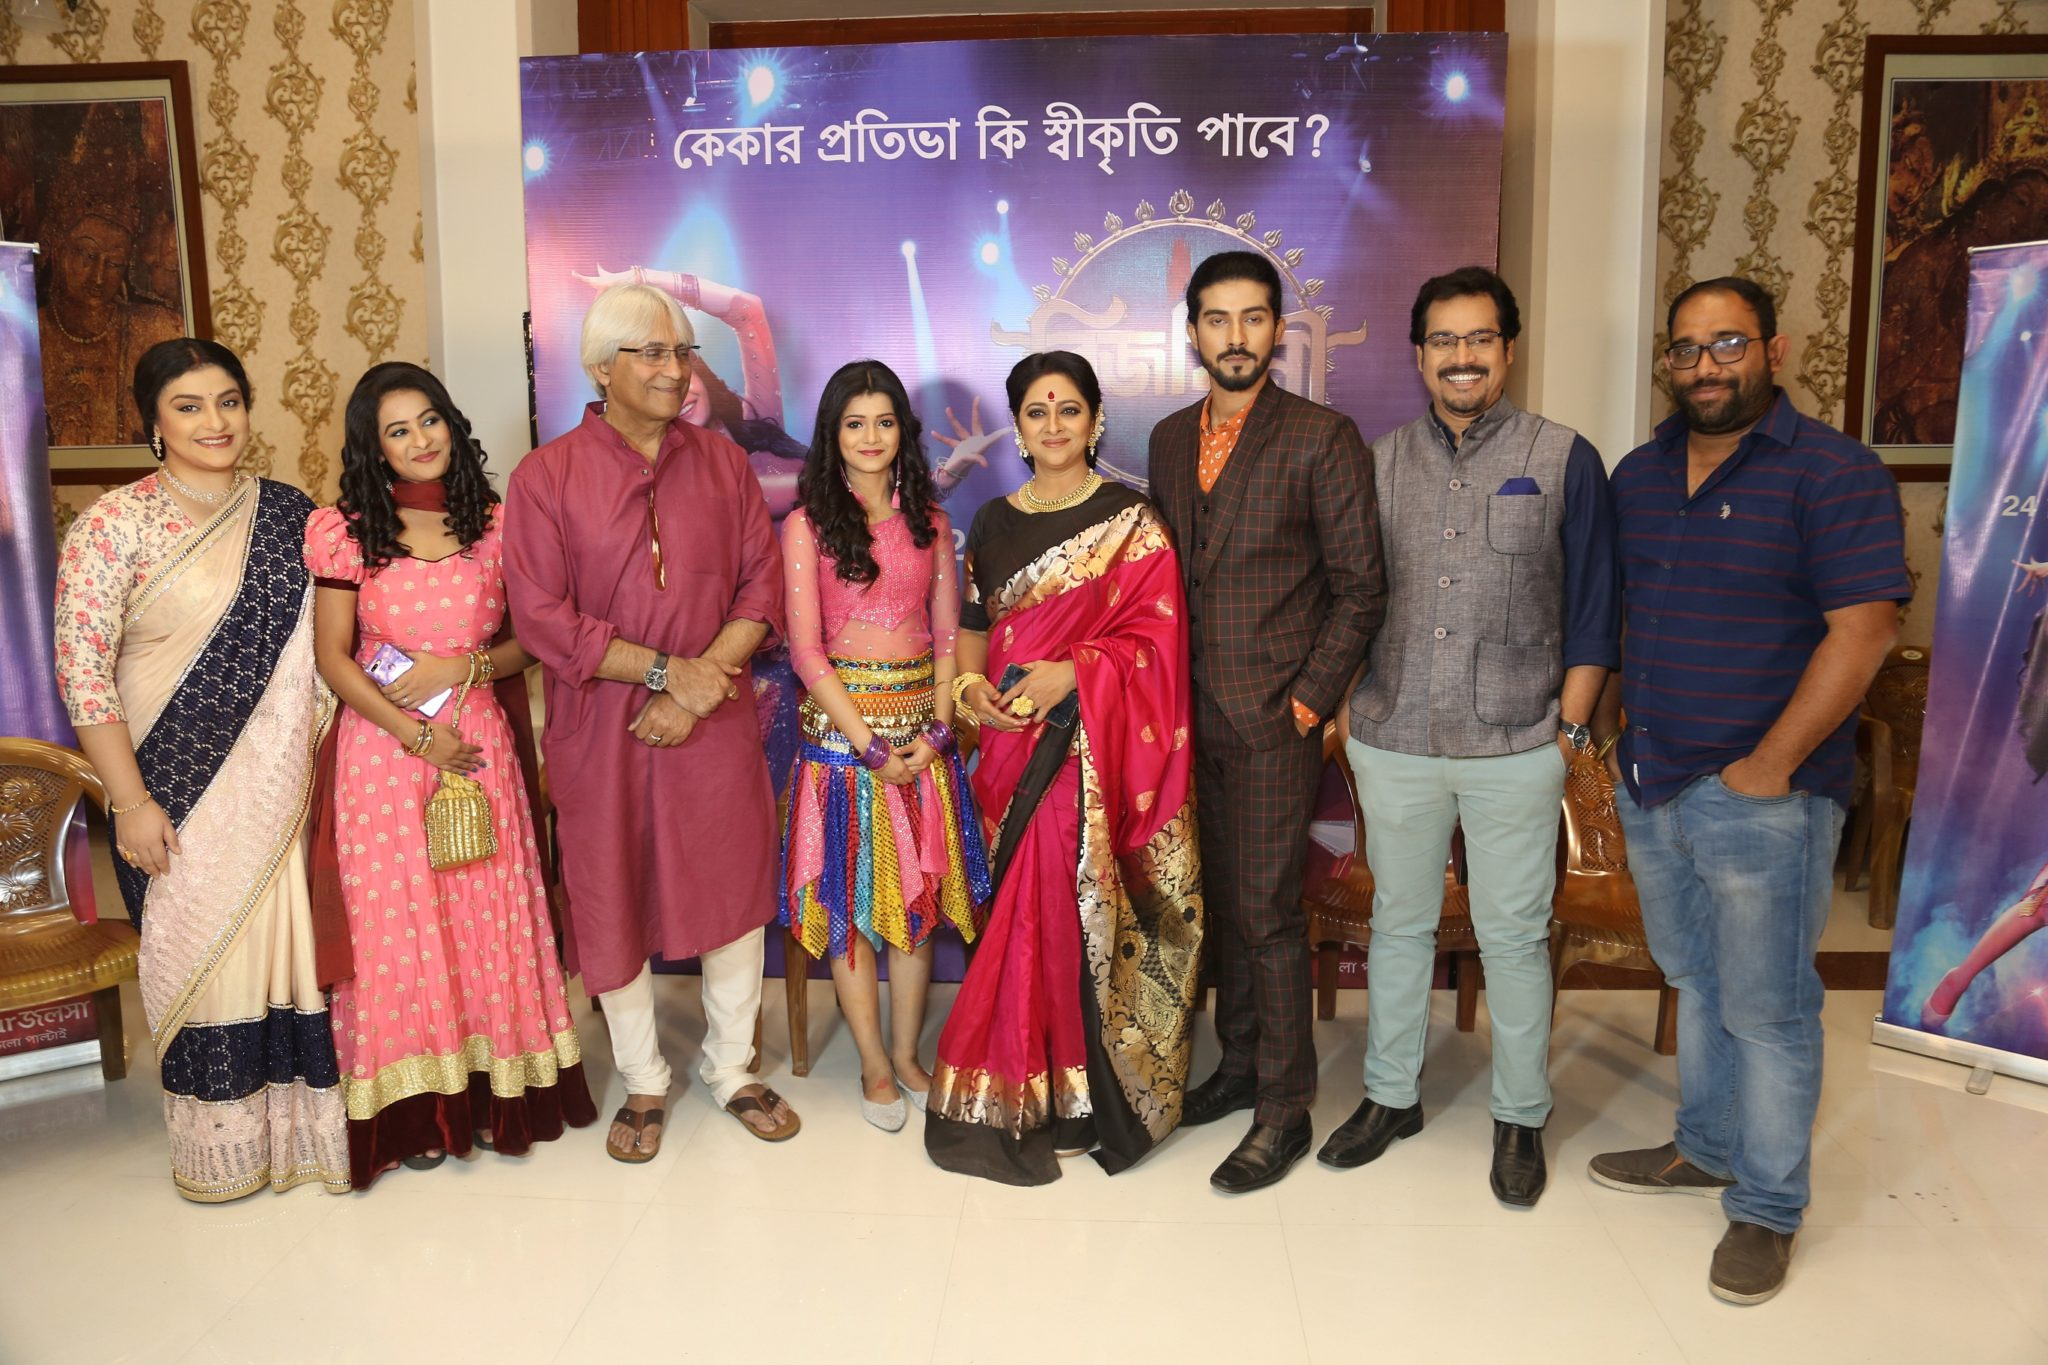 Star Jalsha's upcoming show is about weaving dreams into reality: 'Bijoyini'